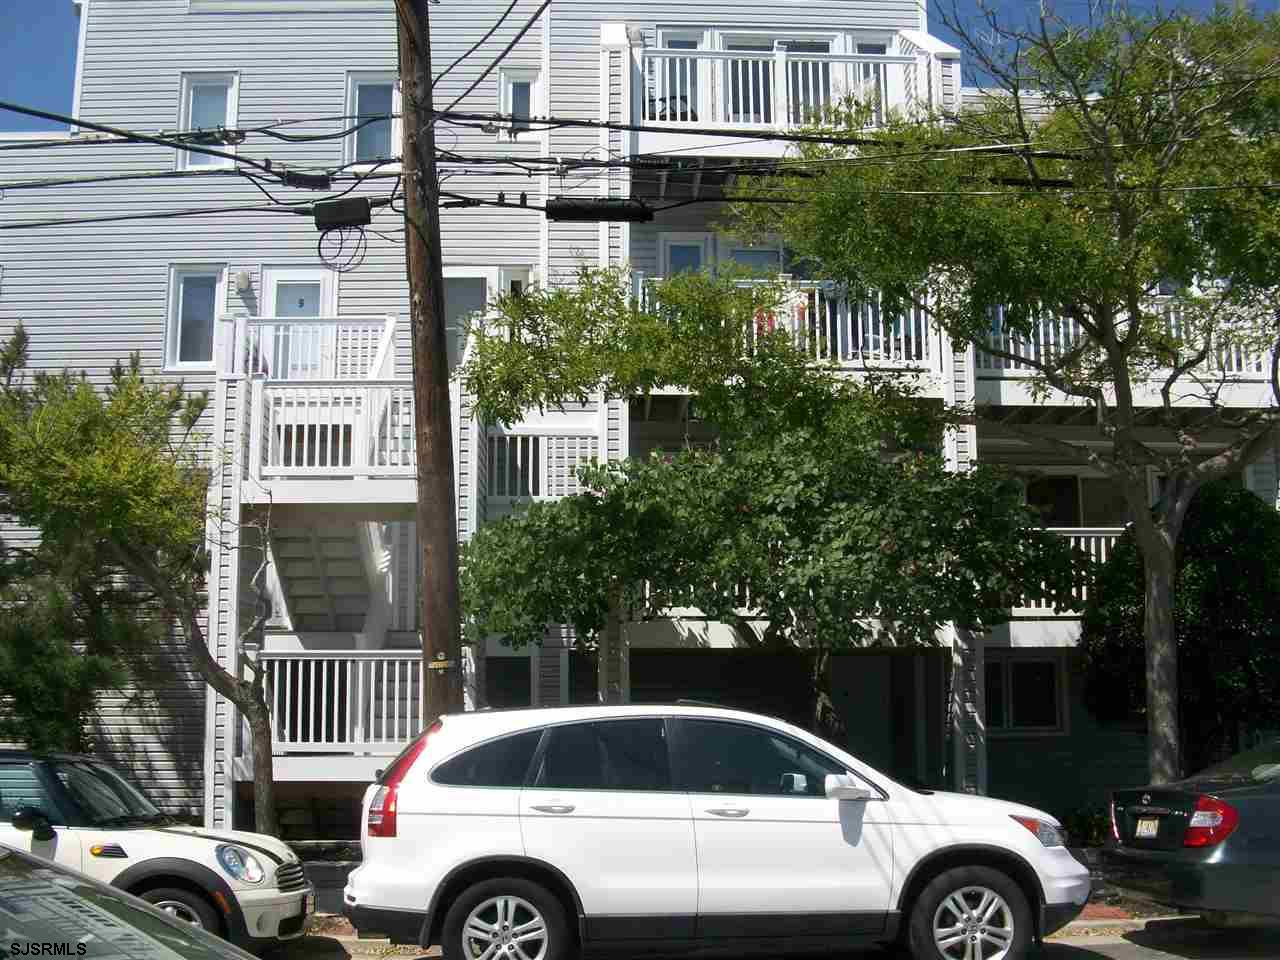 FABULOUS ADAMS HOUSE 1 BEDROOM UNIT.  SPACIOUS.  Enjoy the open layout living room, dining area and